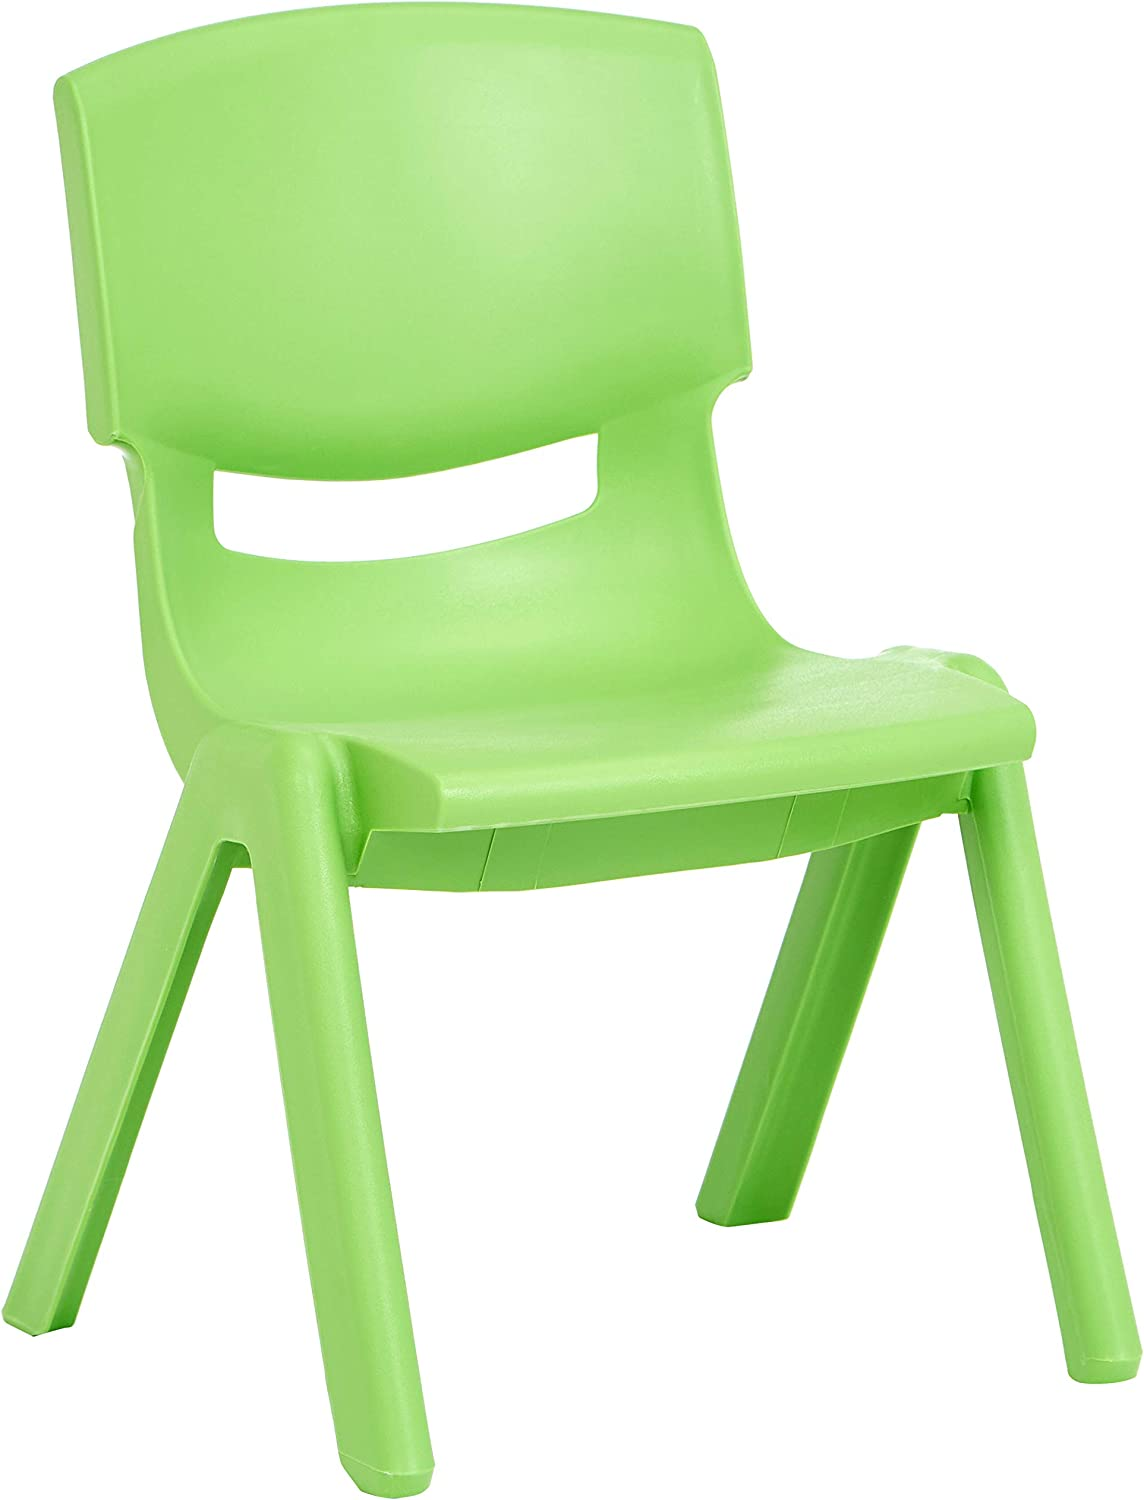 Basics 10 Inch School Classroom Stack Resin Chair, Green, 6-Pack: Industrial & Scientific